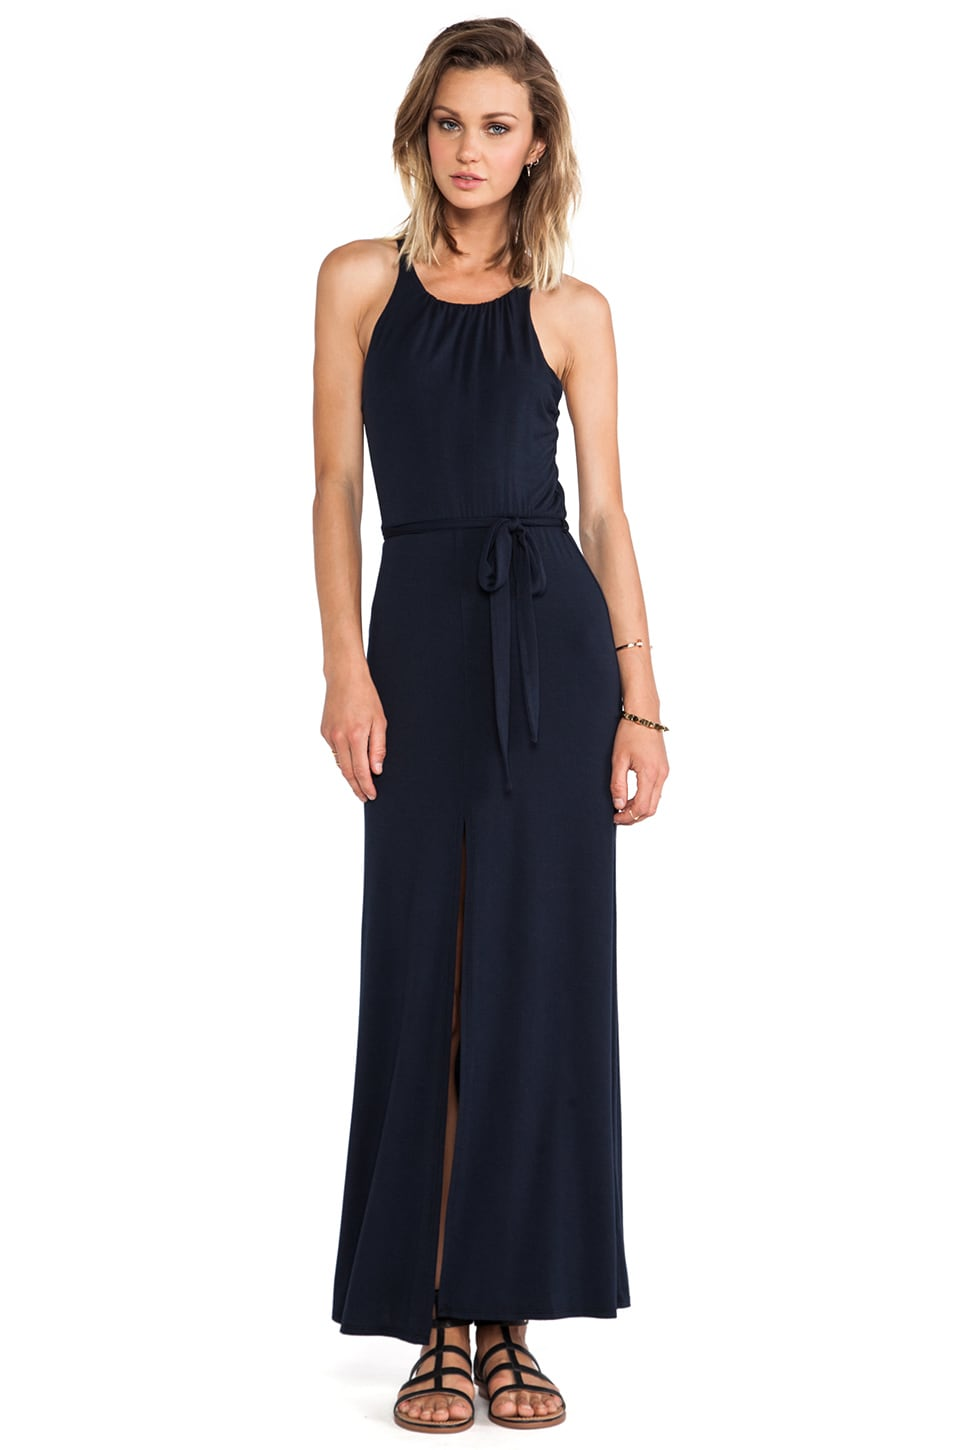 krisa Halter Maxi Dress in Black